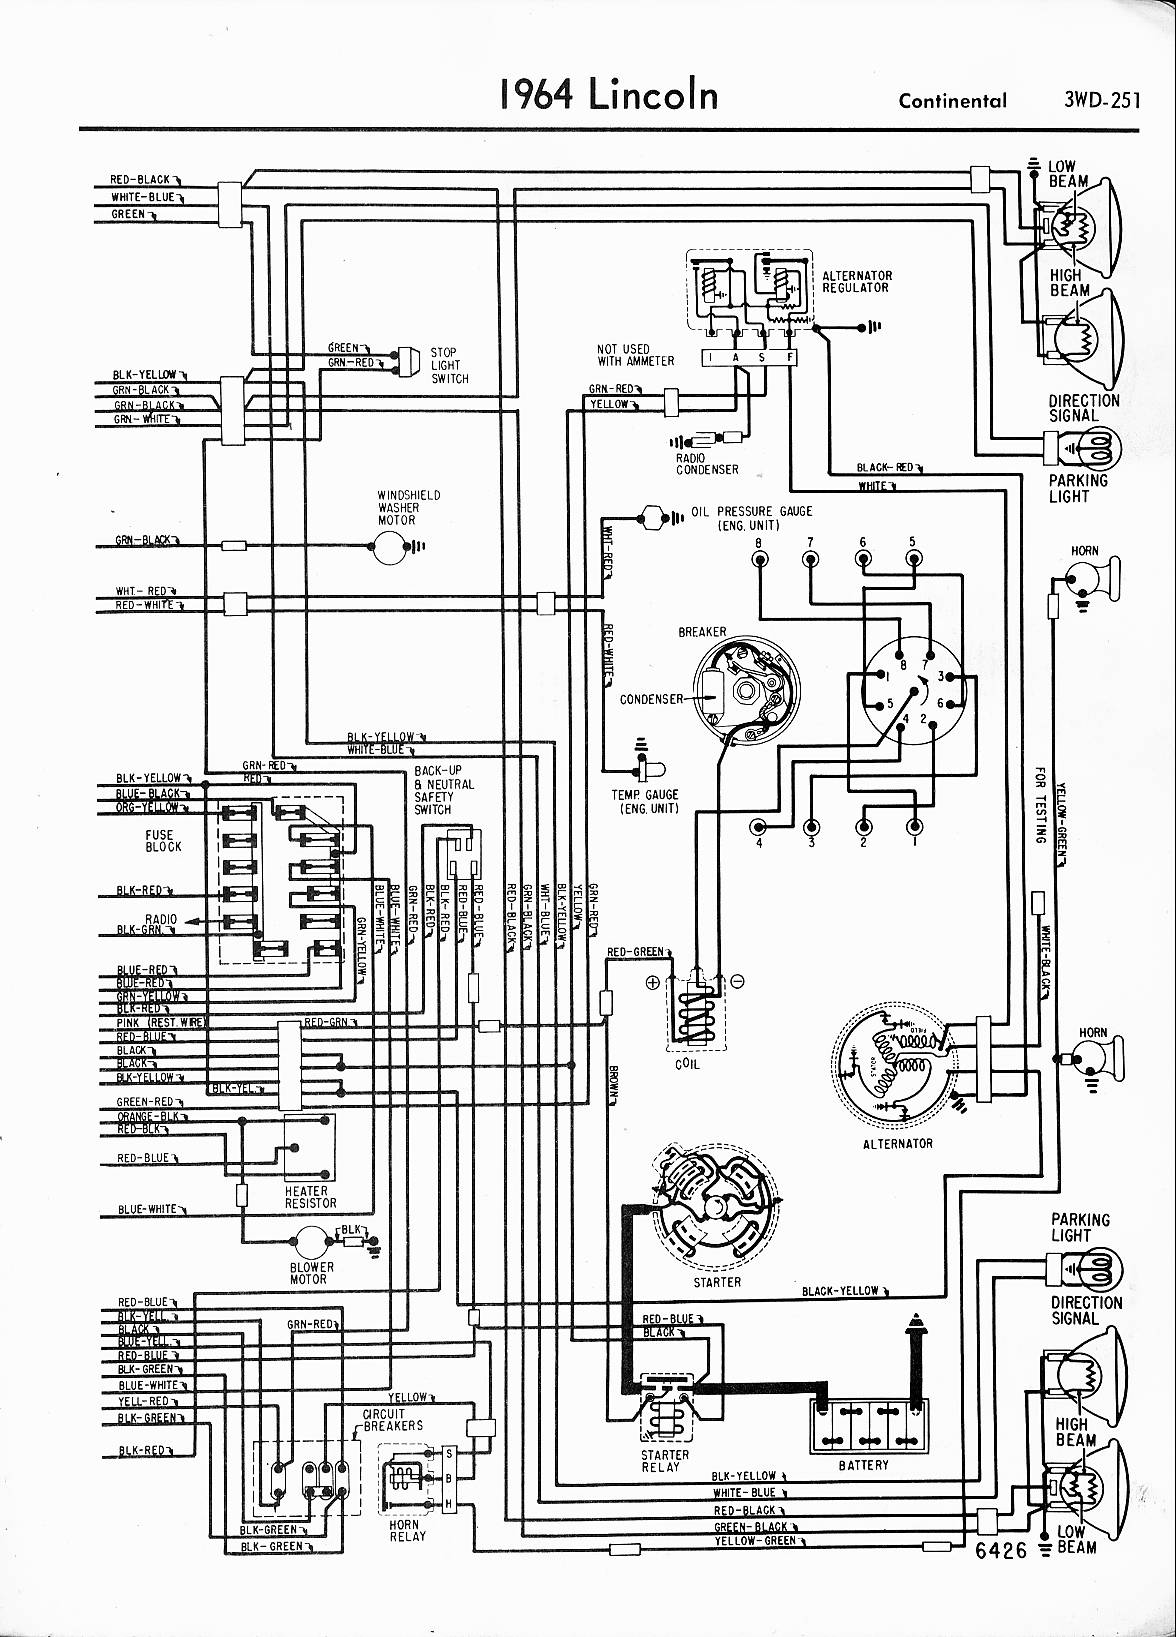 1964 lincoln continental ignition switch 1963 lincoln starter wiring diagram get free image. Black Bedroom Furniture Sets. Home Design Ideas